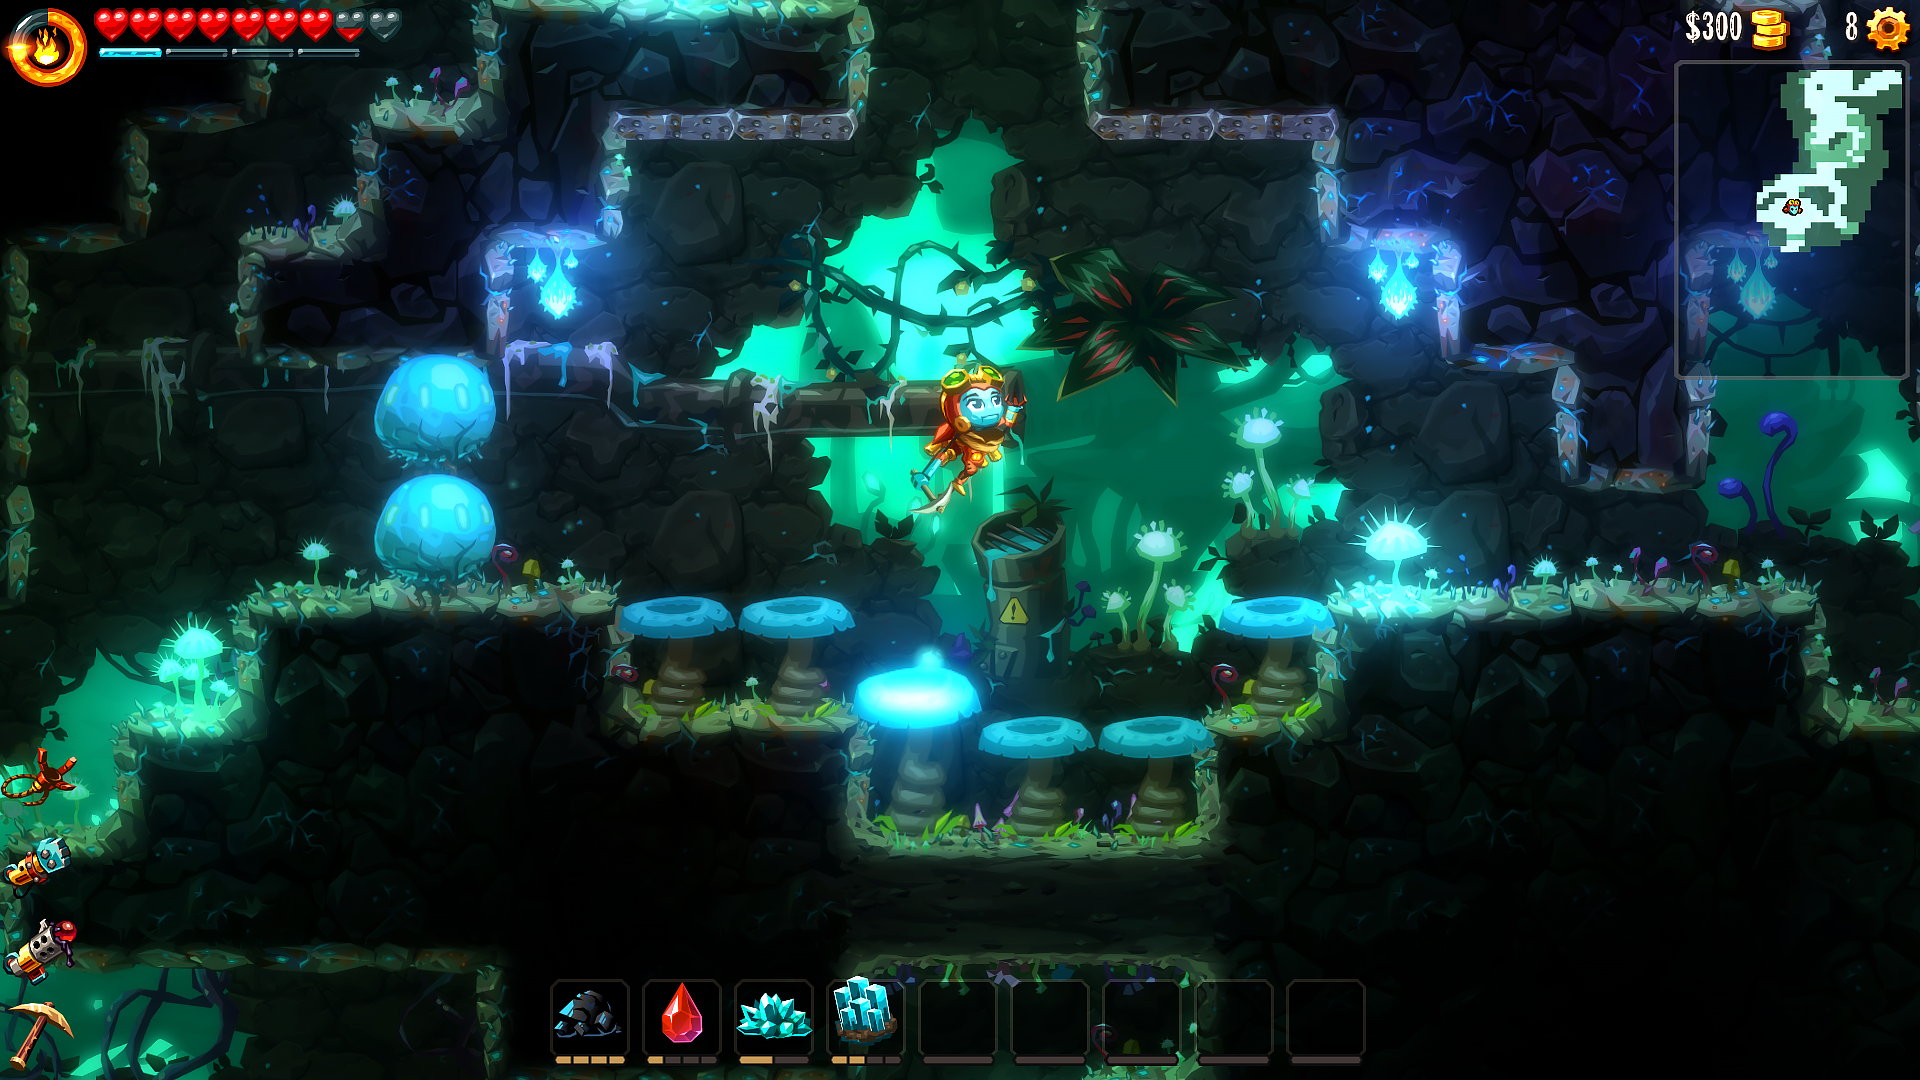 SteamWorld-Dig-2-Screenshot-10.png